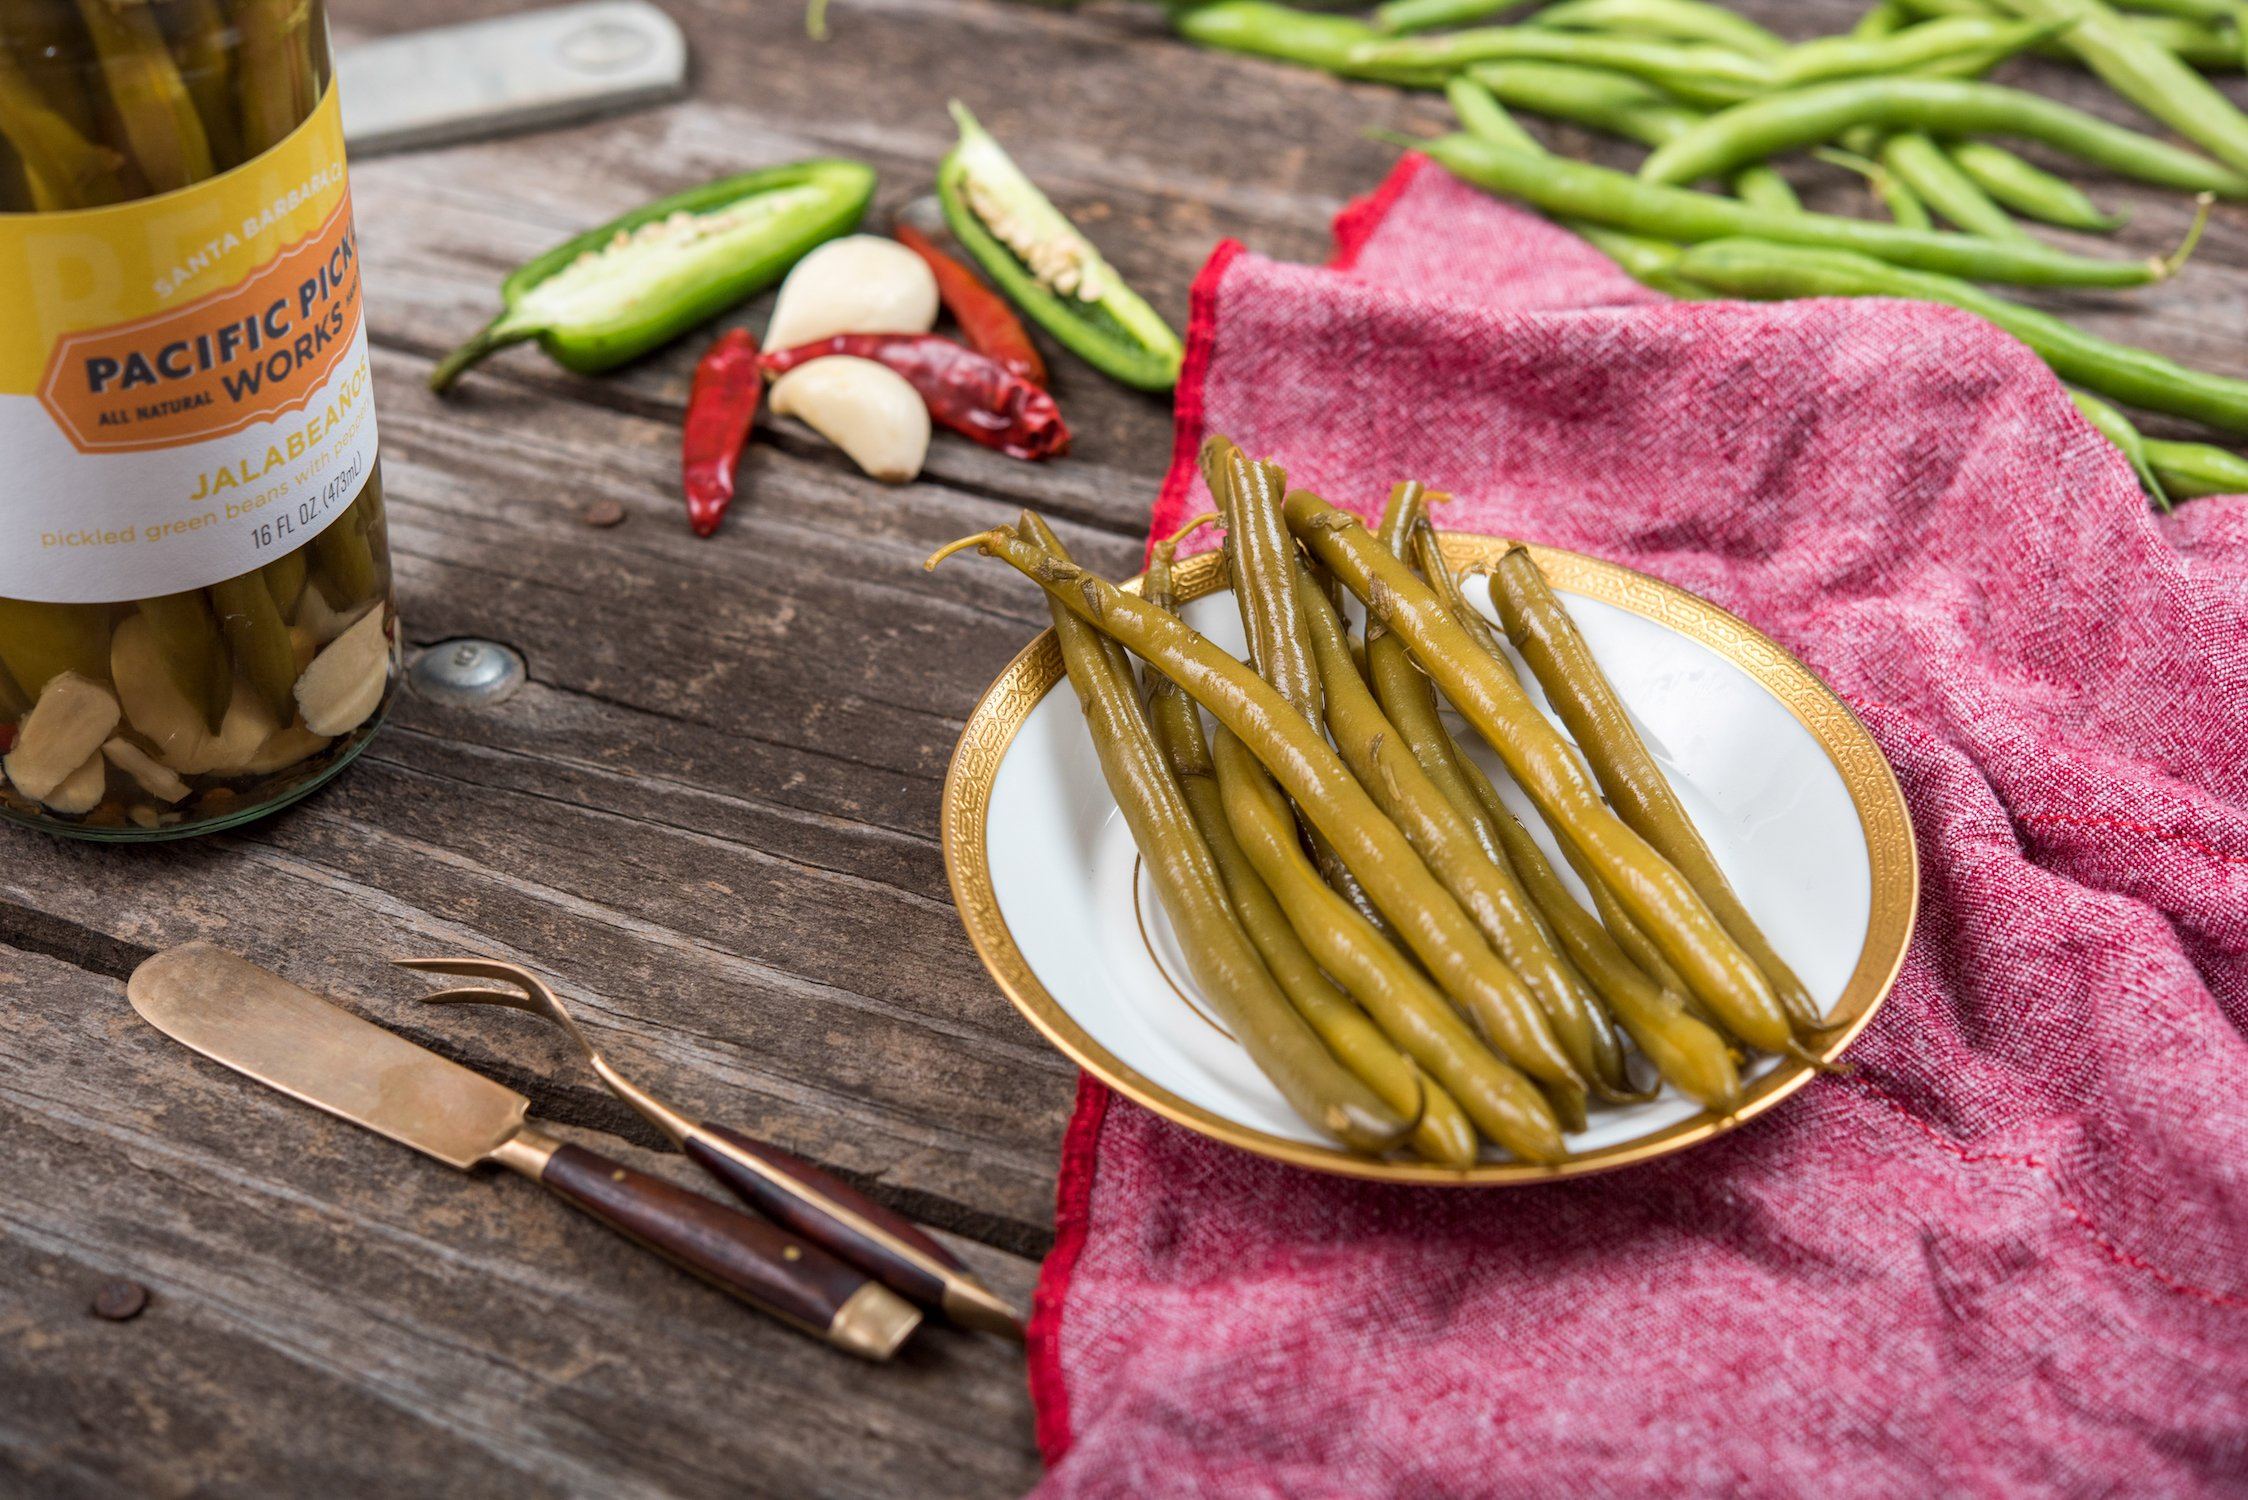 Jalabeaños (3-pack) - Spicy pickled green beans 16oz by Pacific Pickle Works (Image #4)